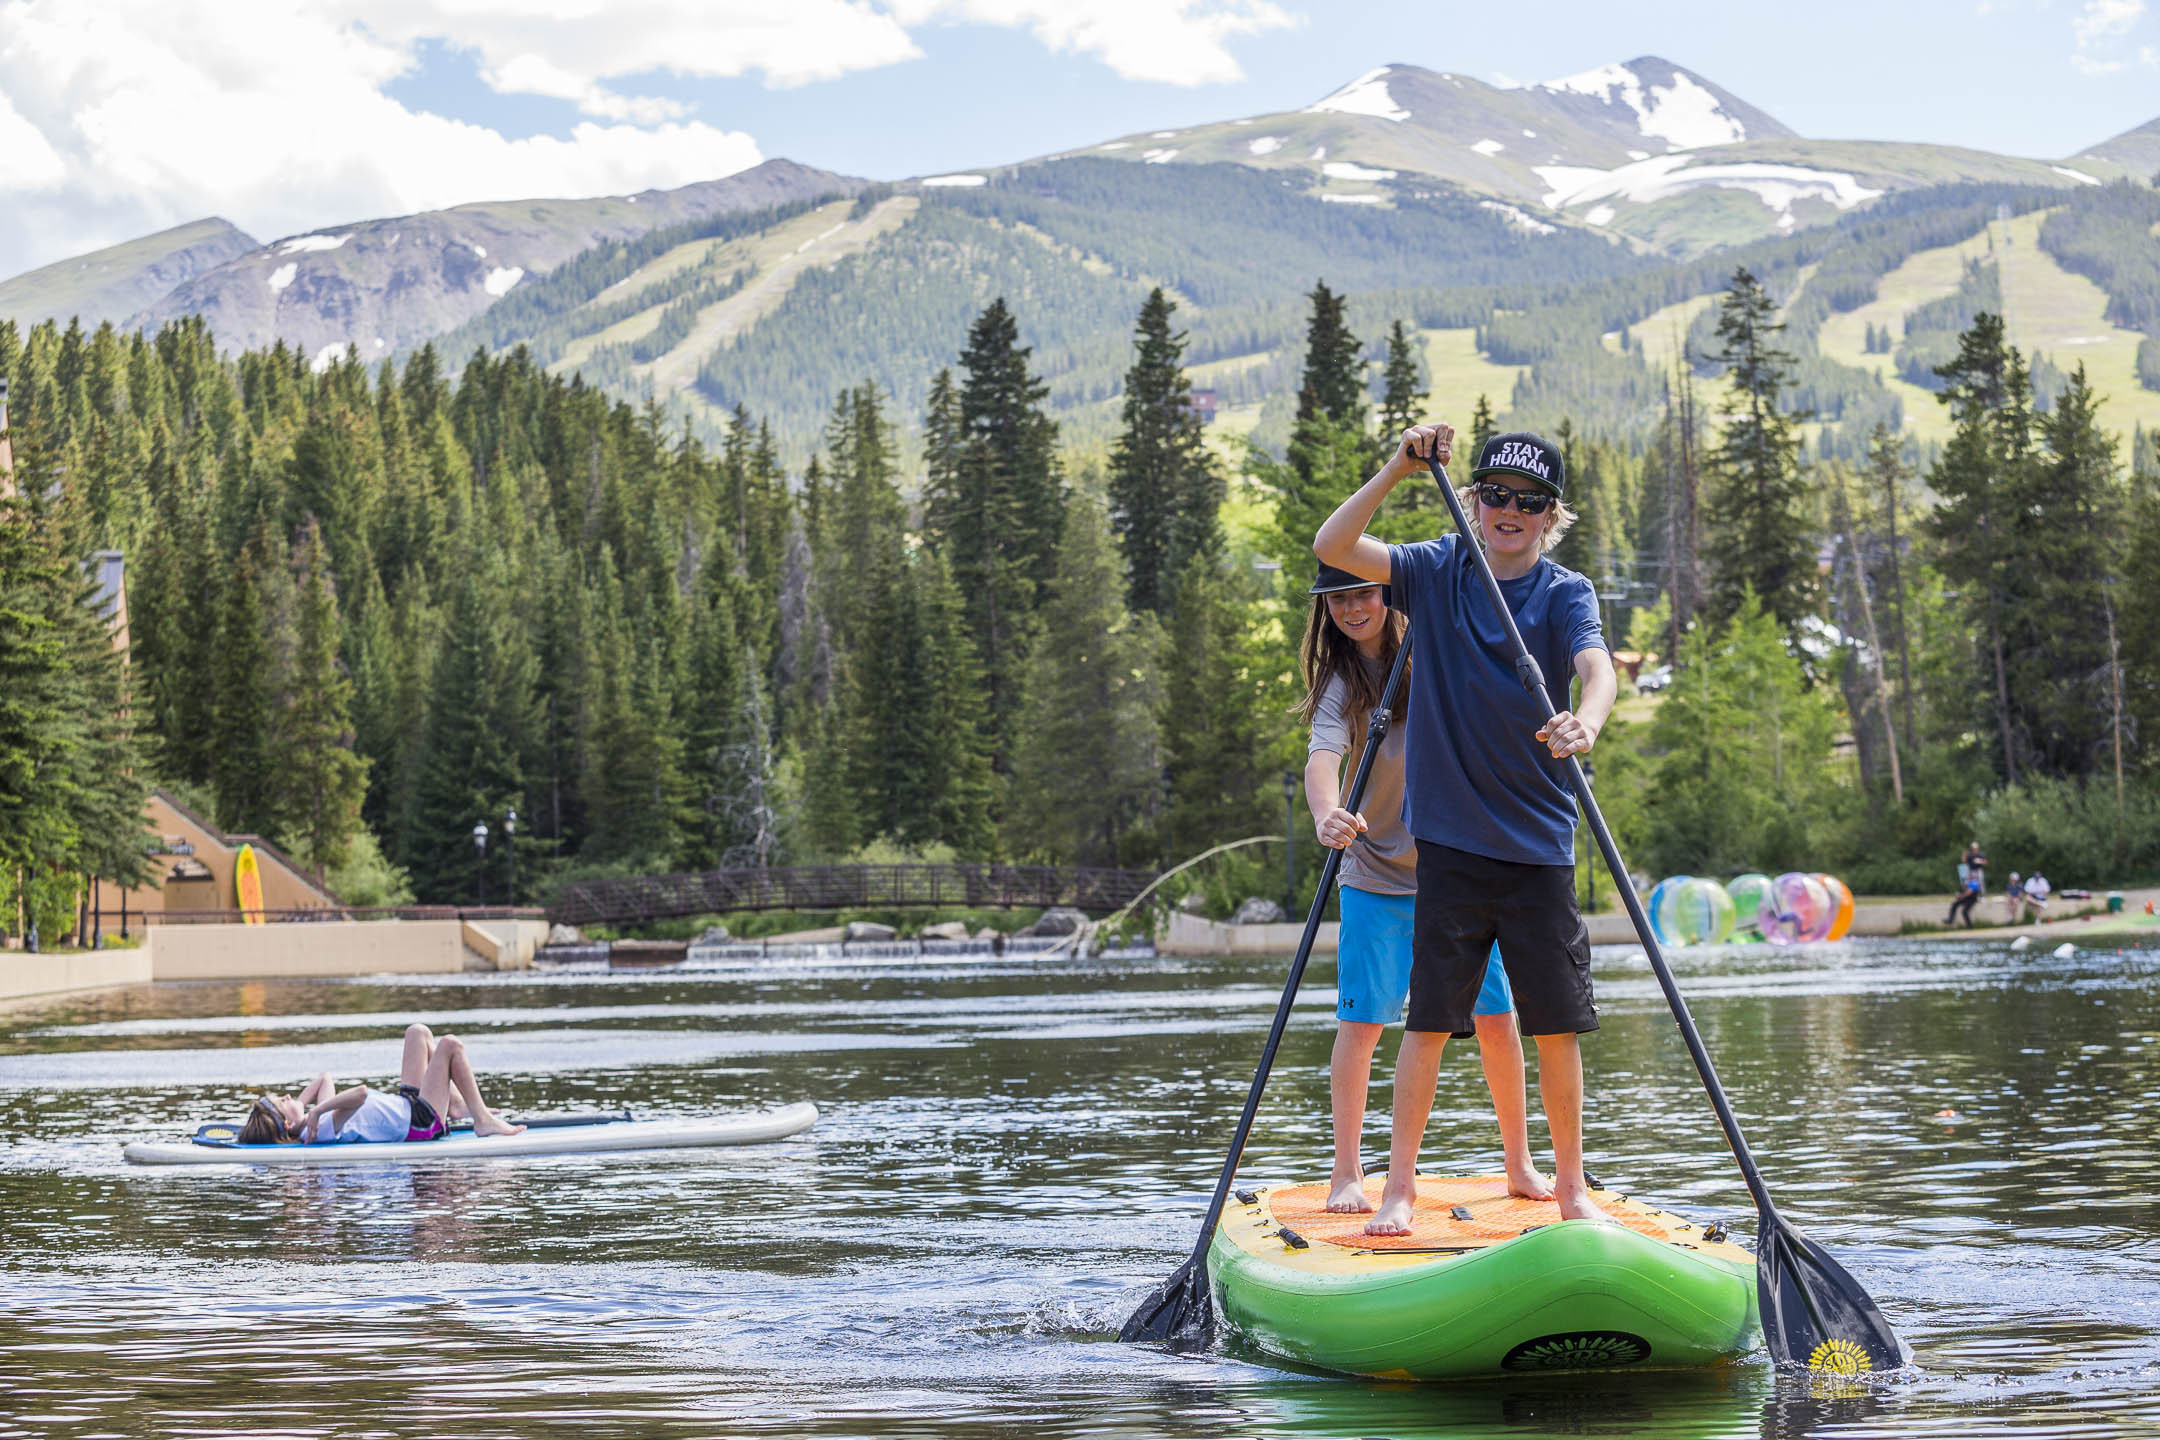 Stand Up Paddle on a Lake in Breckenridge Colorado